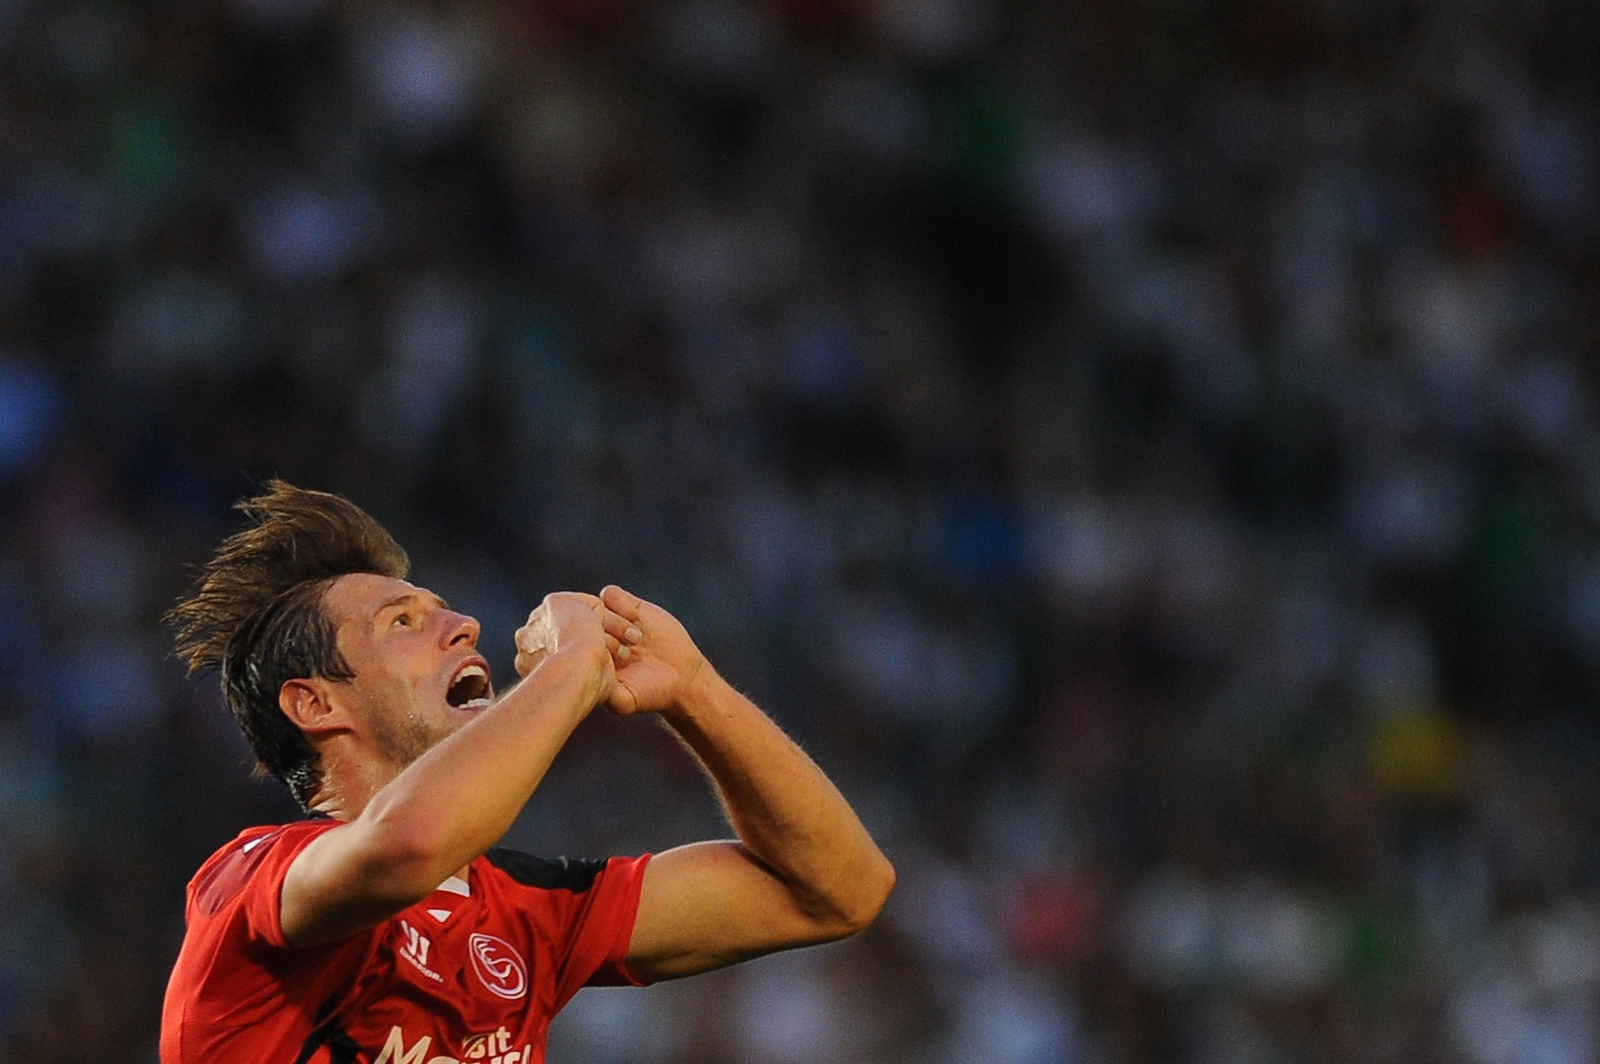 Arsenal transfer target Grzegorz Krychowiak suffered cracked rib in ...